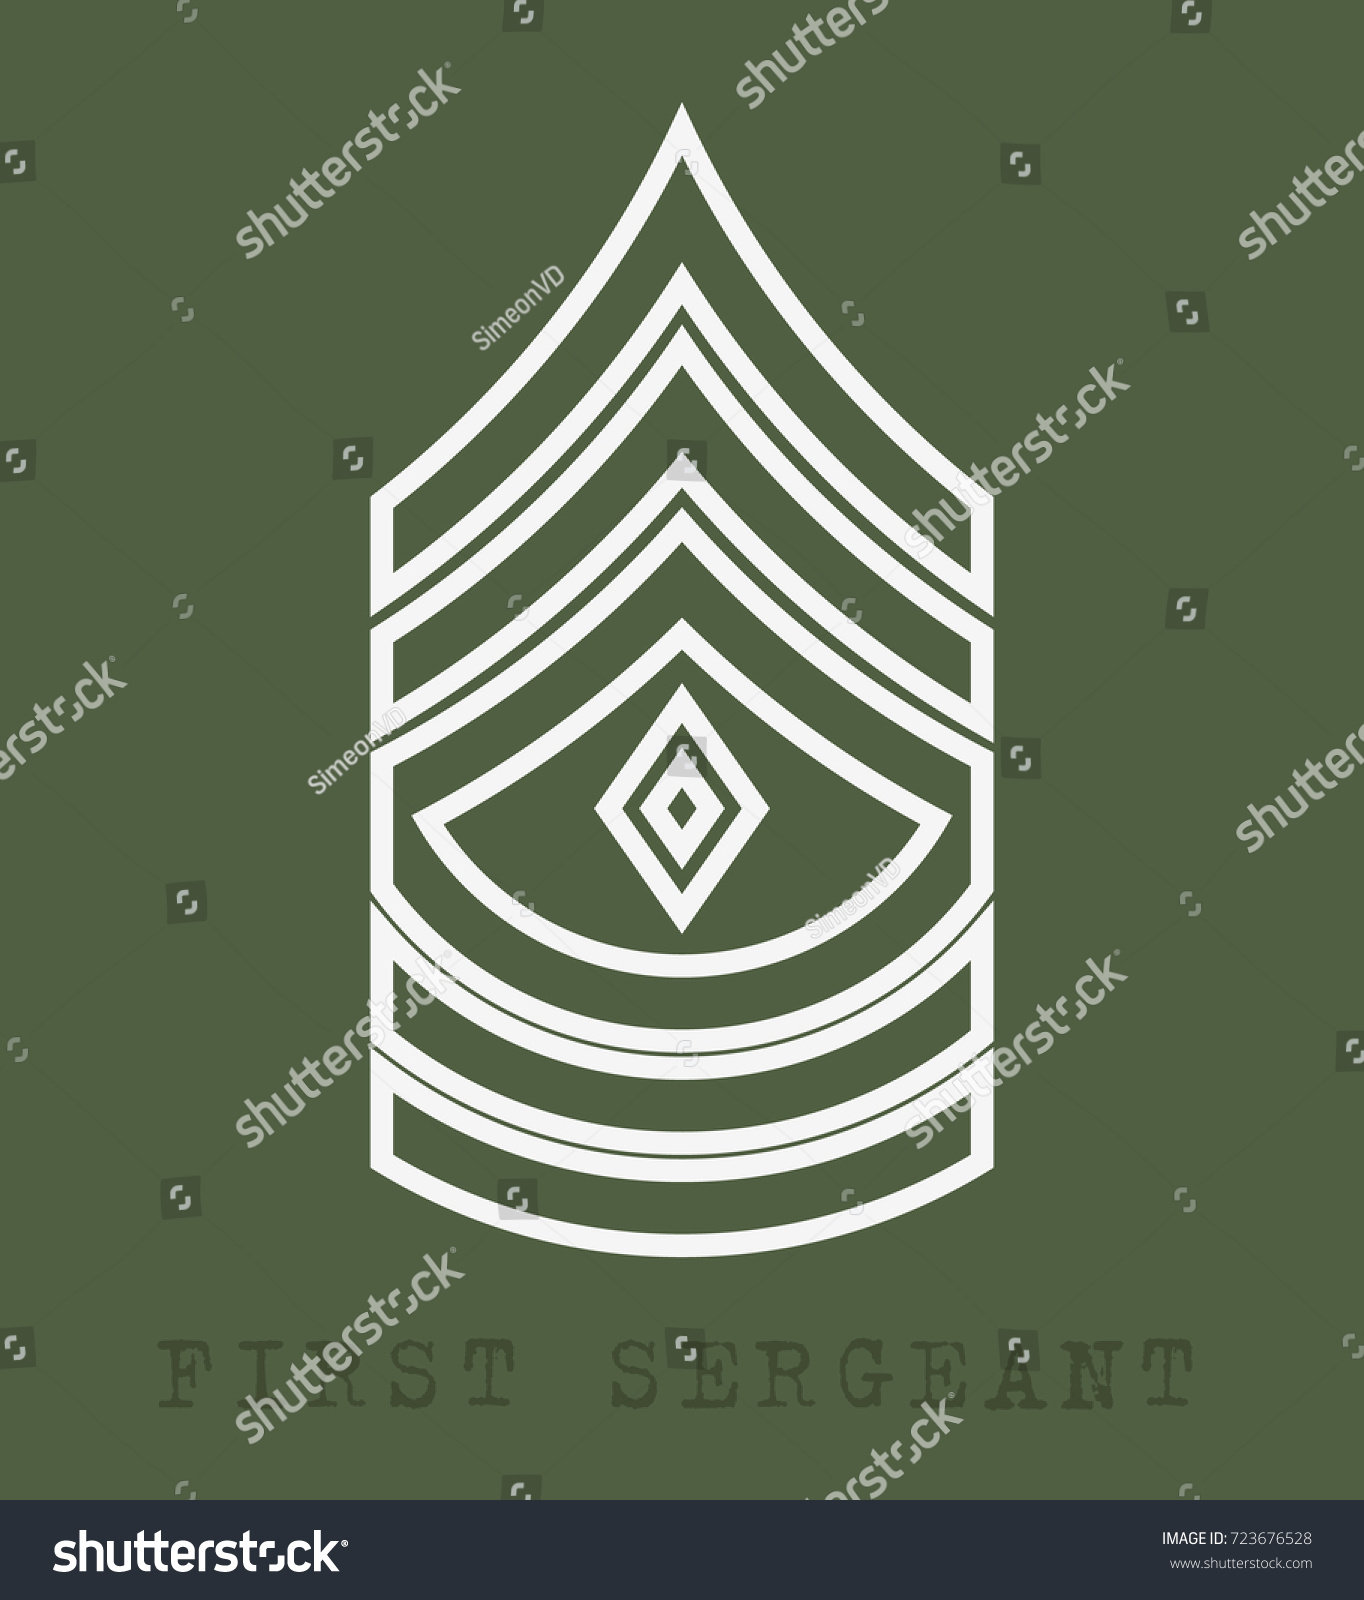 Military ranks insignia stripes chevrons army stock vector 723676528 military ranks and insignia stripes and chevrons of army first sergeant biocorpaavc Images